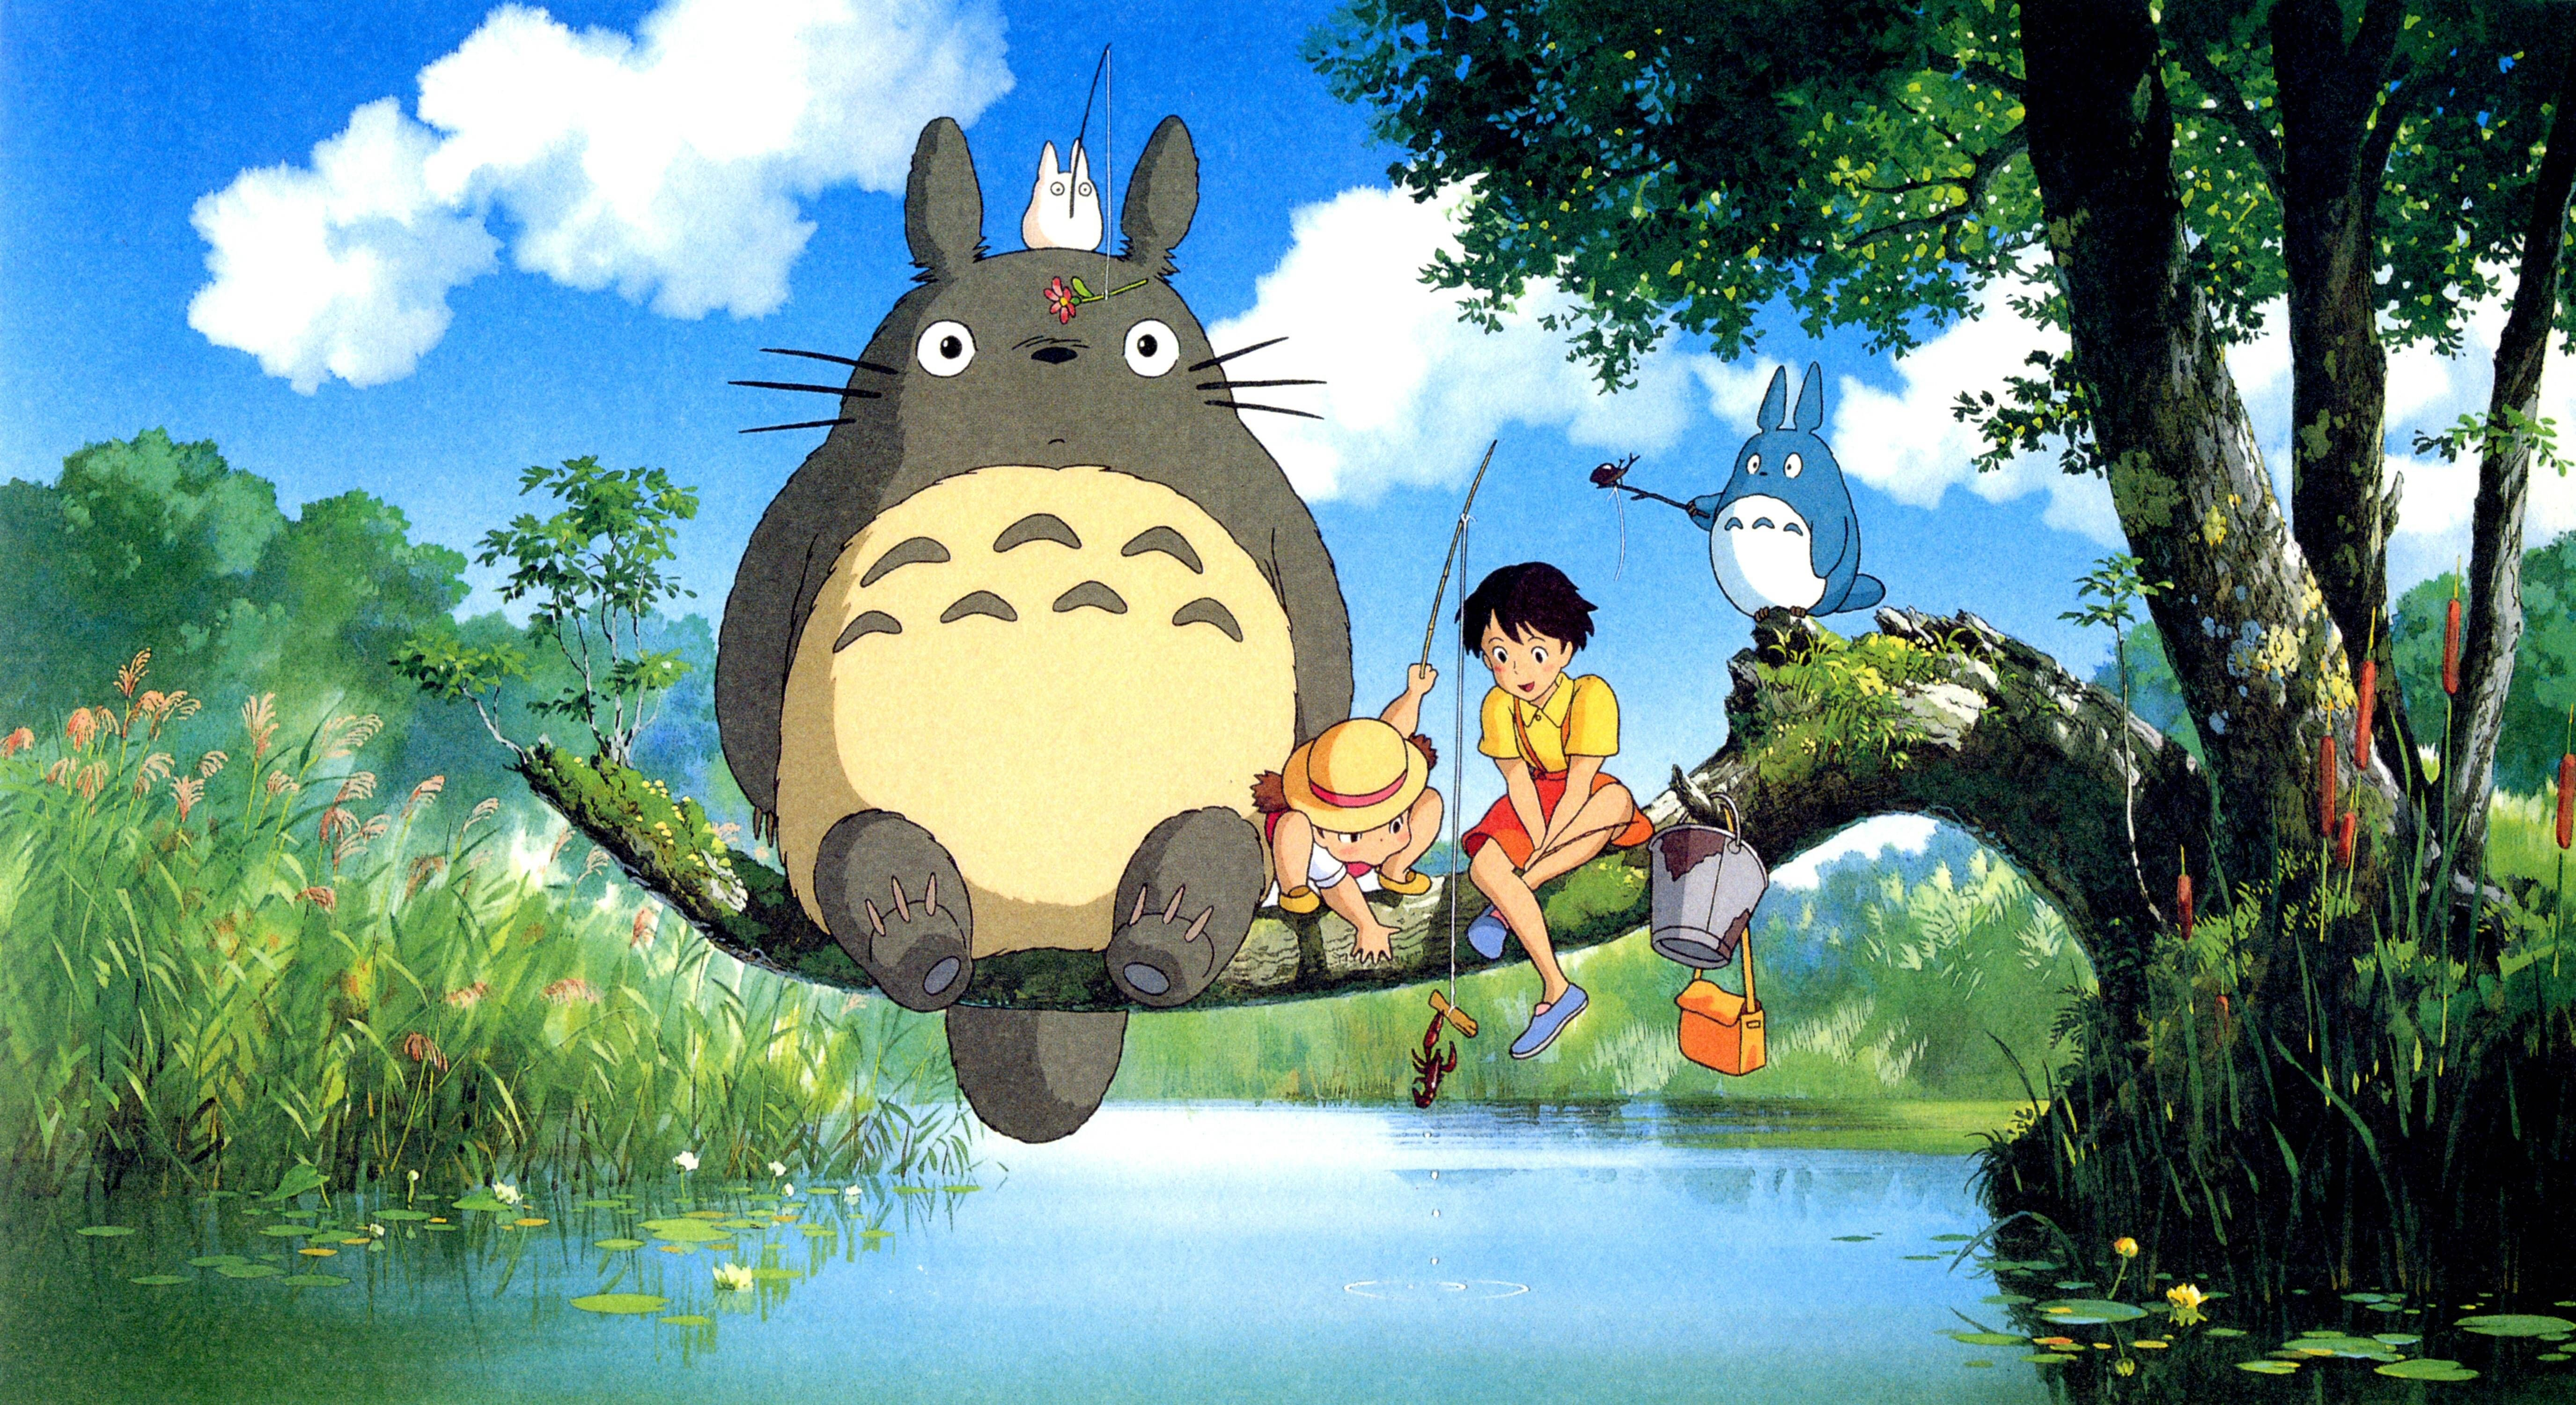 Mobile And Desktop Wallpaper Hd Totoro Art Ghibli Artwork Studio Ghibli